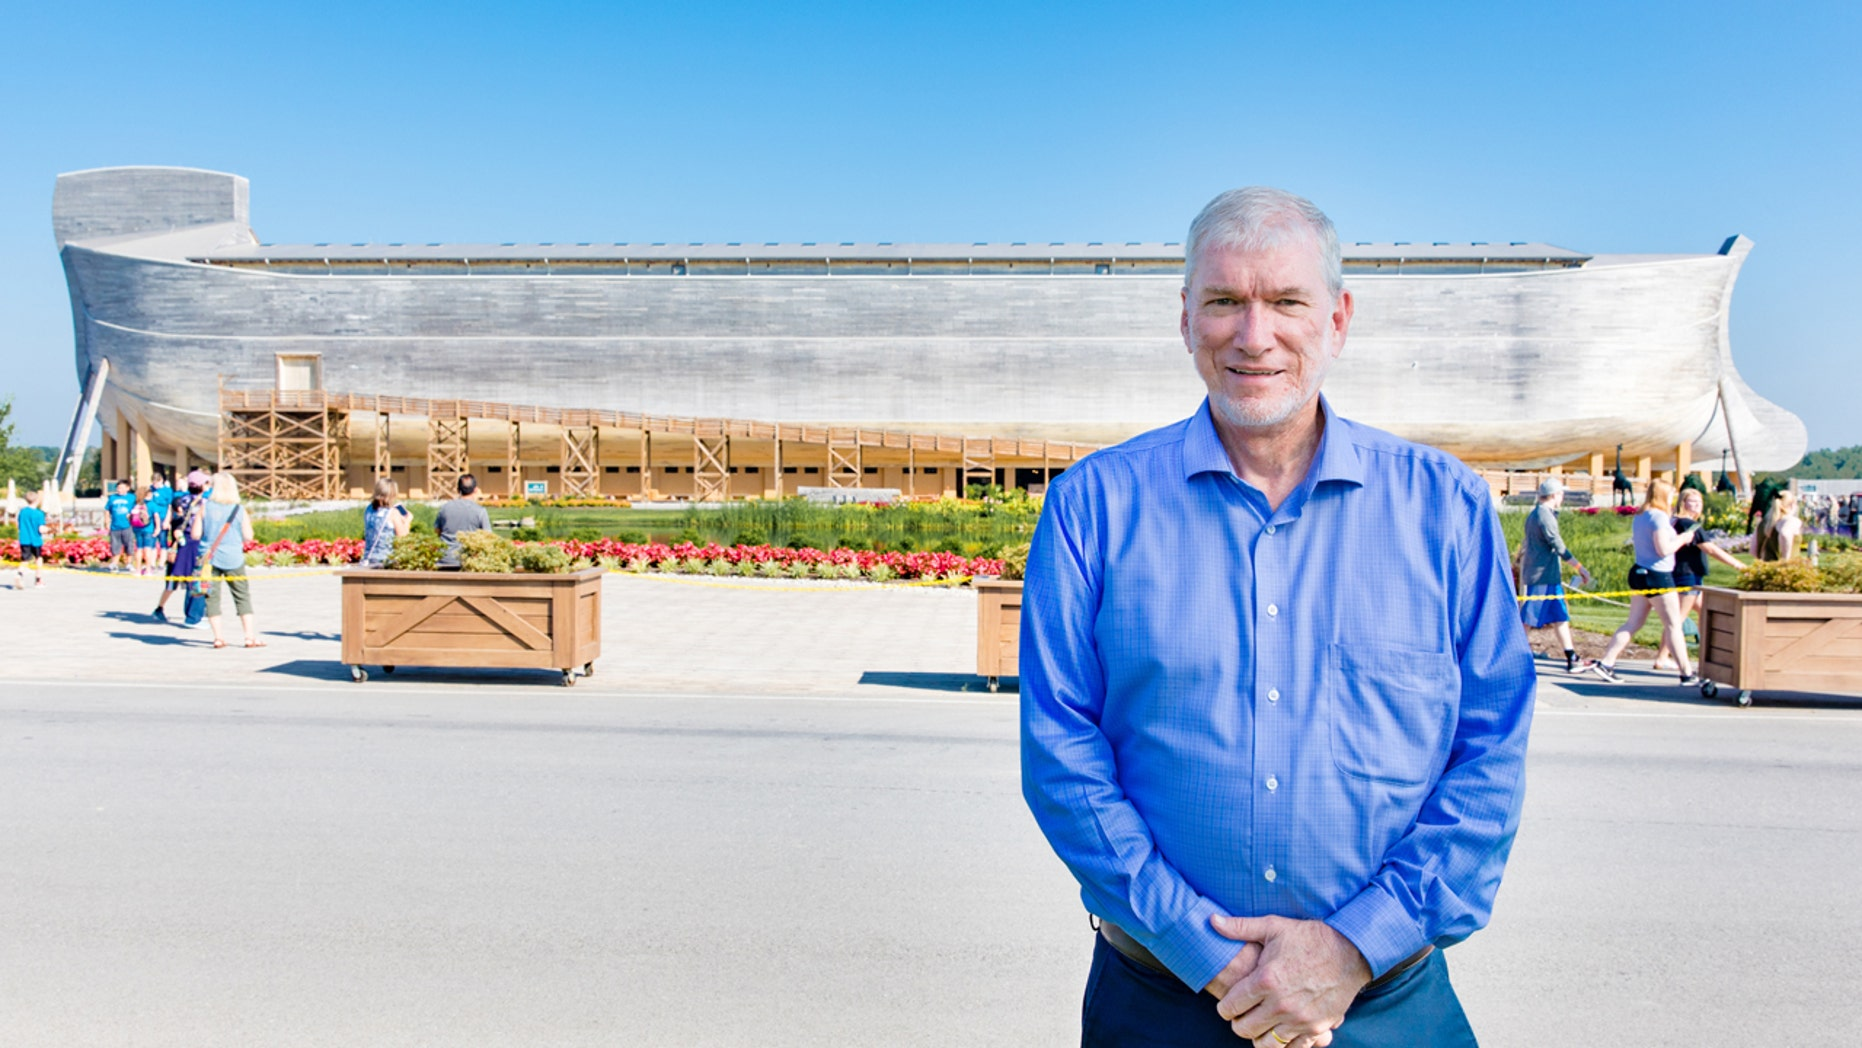 Ken Ham, president and founder of Answers in Genesis, the Creation Museum, and the Ark Encounter, stands in front of a full-size Noah's Ark replica.